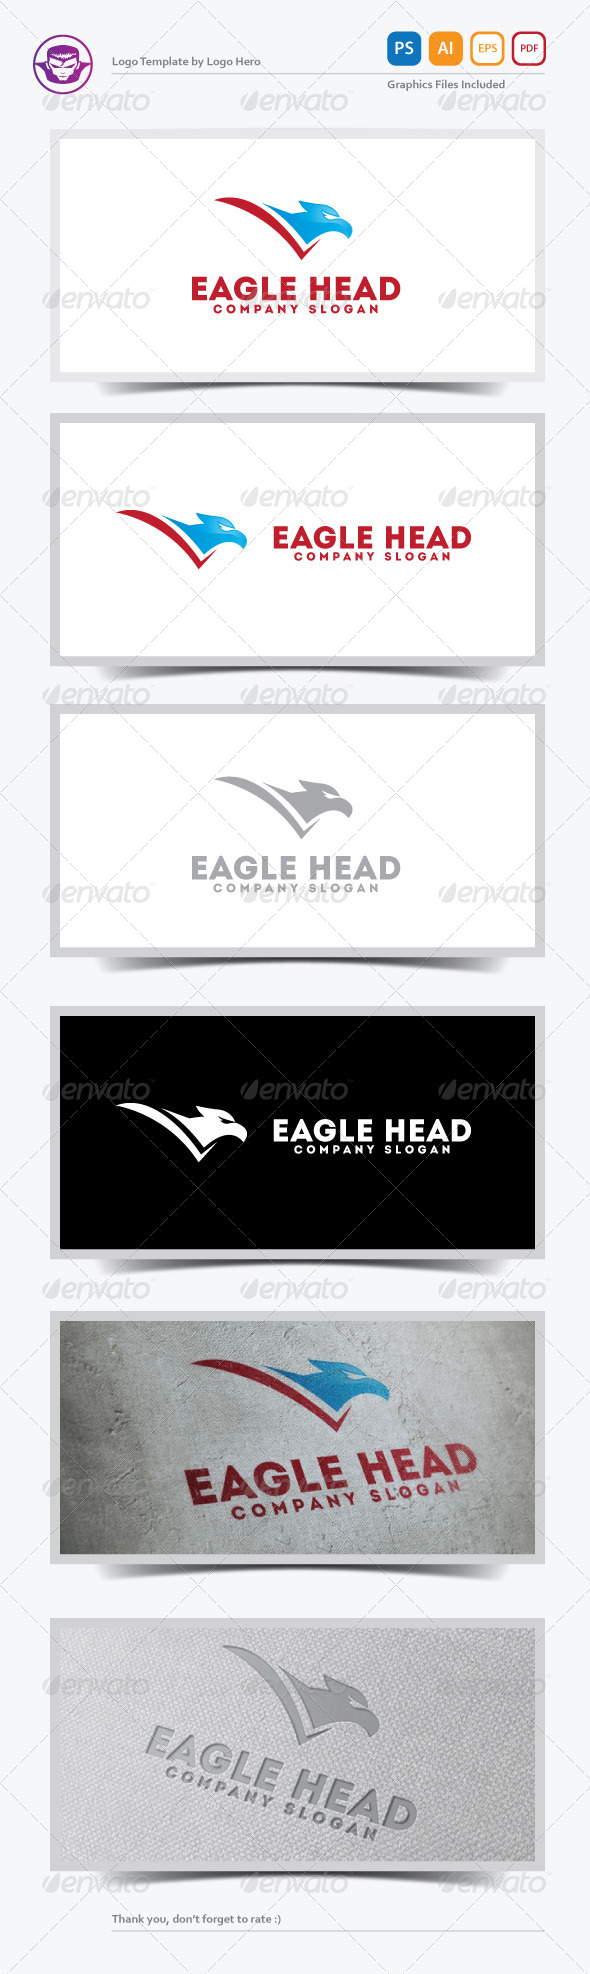 GraphicRiver Eagle Head Logo Template 5583987